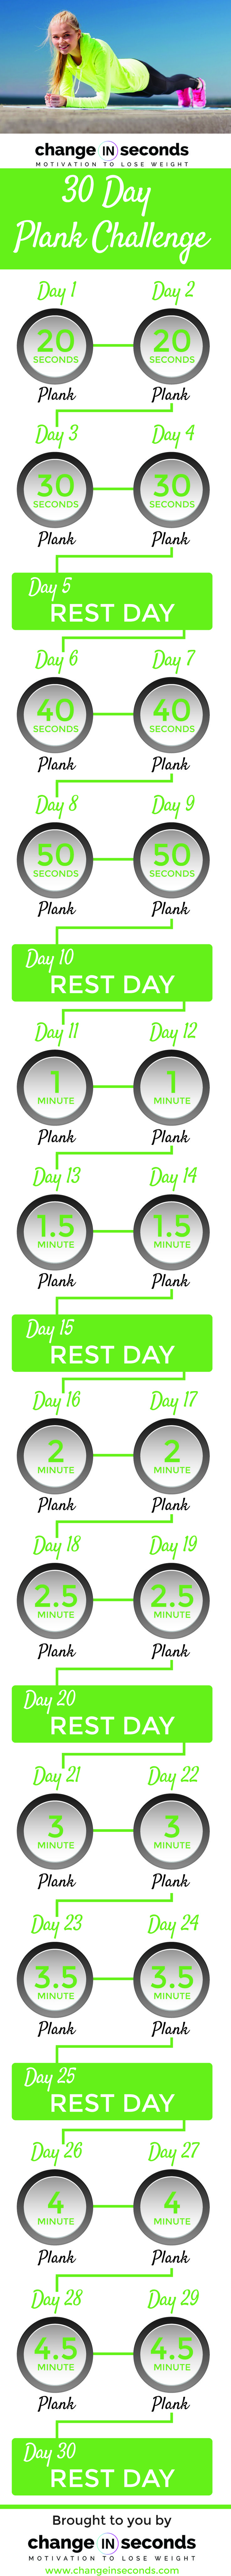 30 Day Plank Challenge (Download PDF) http://www.changeinseconds.com/30-day-plank-challenge/